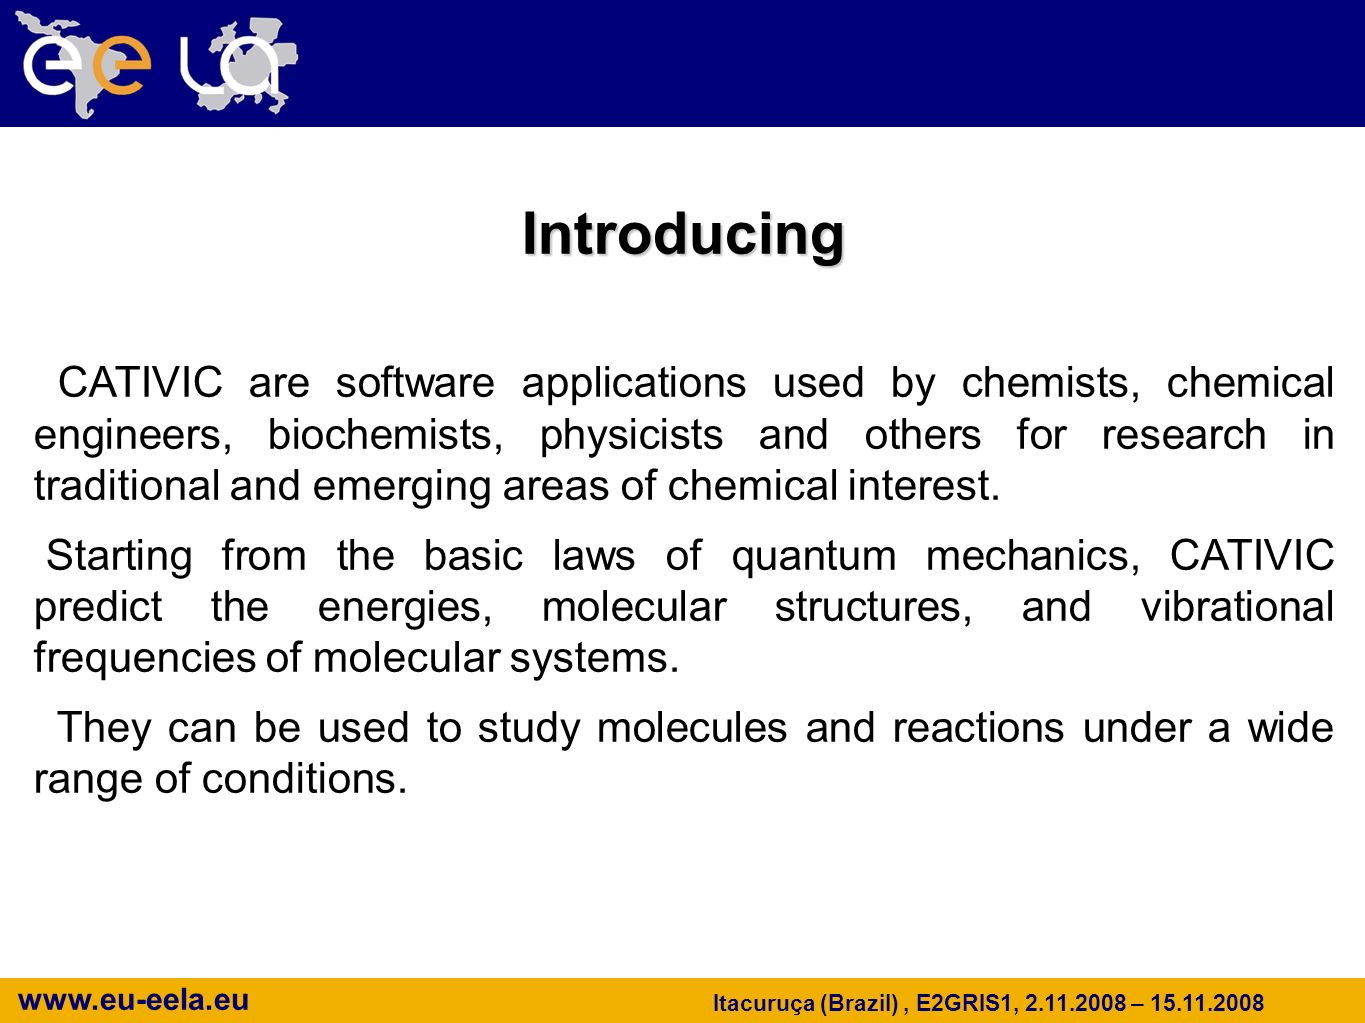 Itacuruça (Brazil), E2GRIS1, – Introducing CATIVIC are software applications used by chemists, chemical engineers, biochemists, physicists and others for research in traditional and emerging areas of chemical interest.